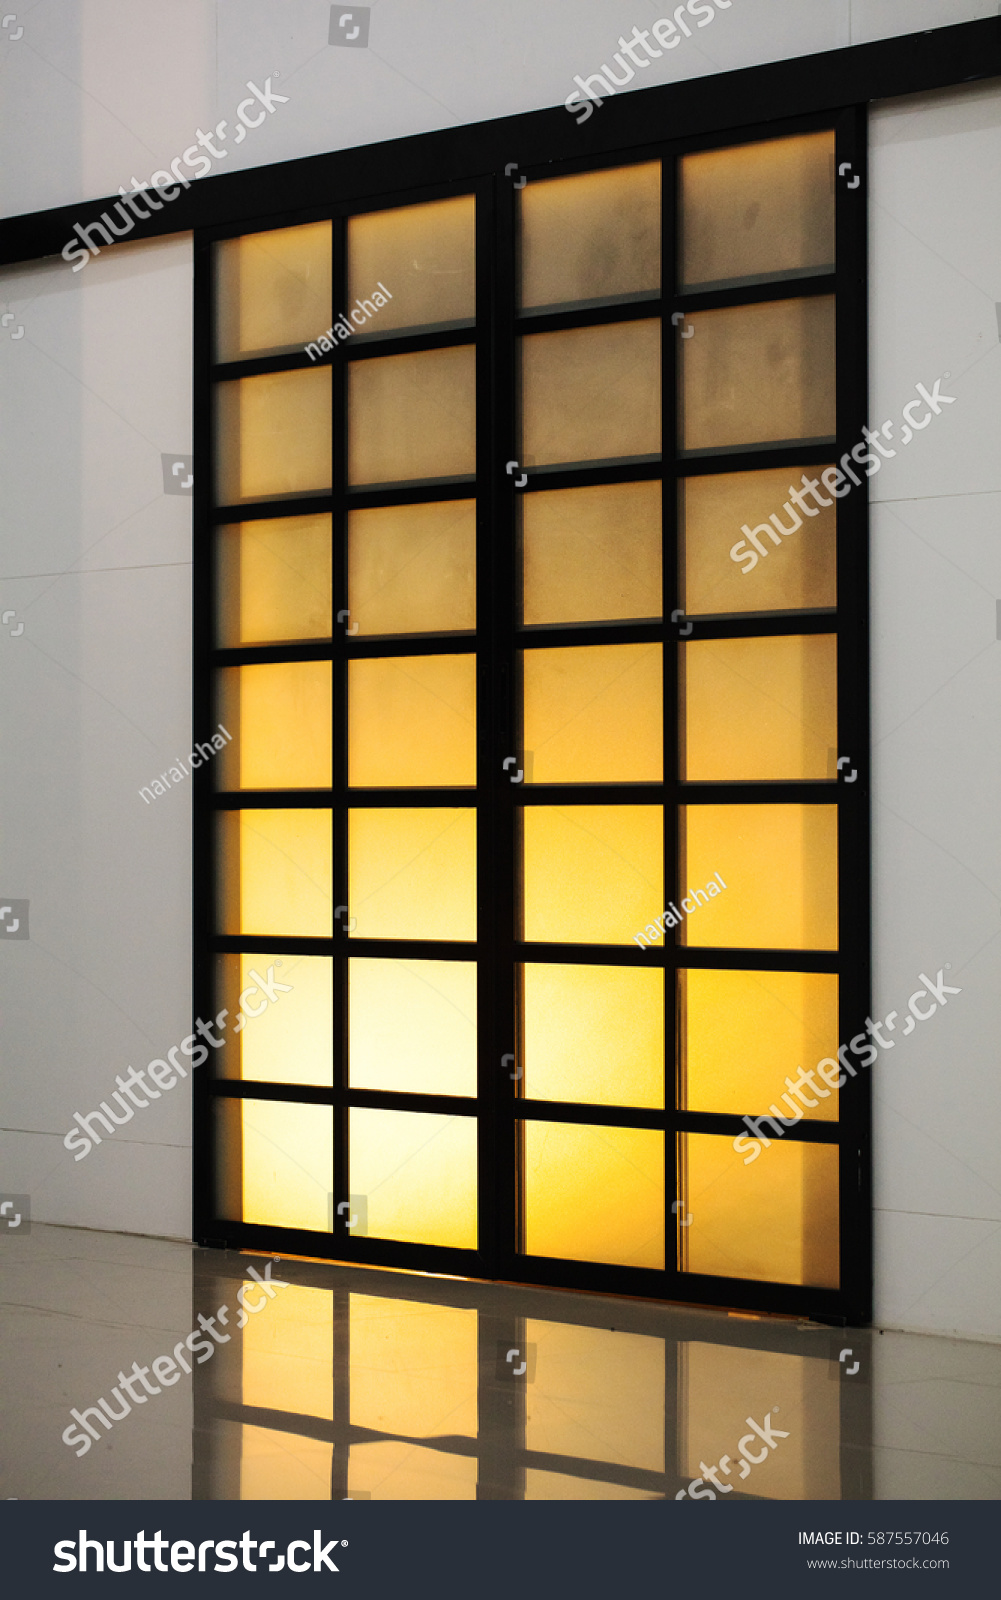 Beautiful and classic Japanese door style with lighting and reflection & Beautiful Classic Japanese Door Style Lighting Stock Photo ... pezcame.com